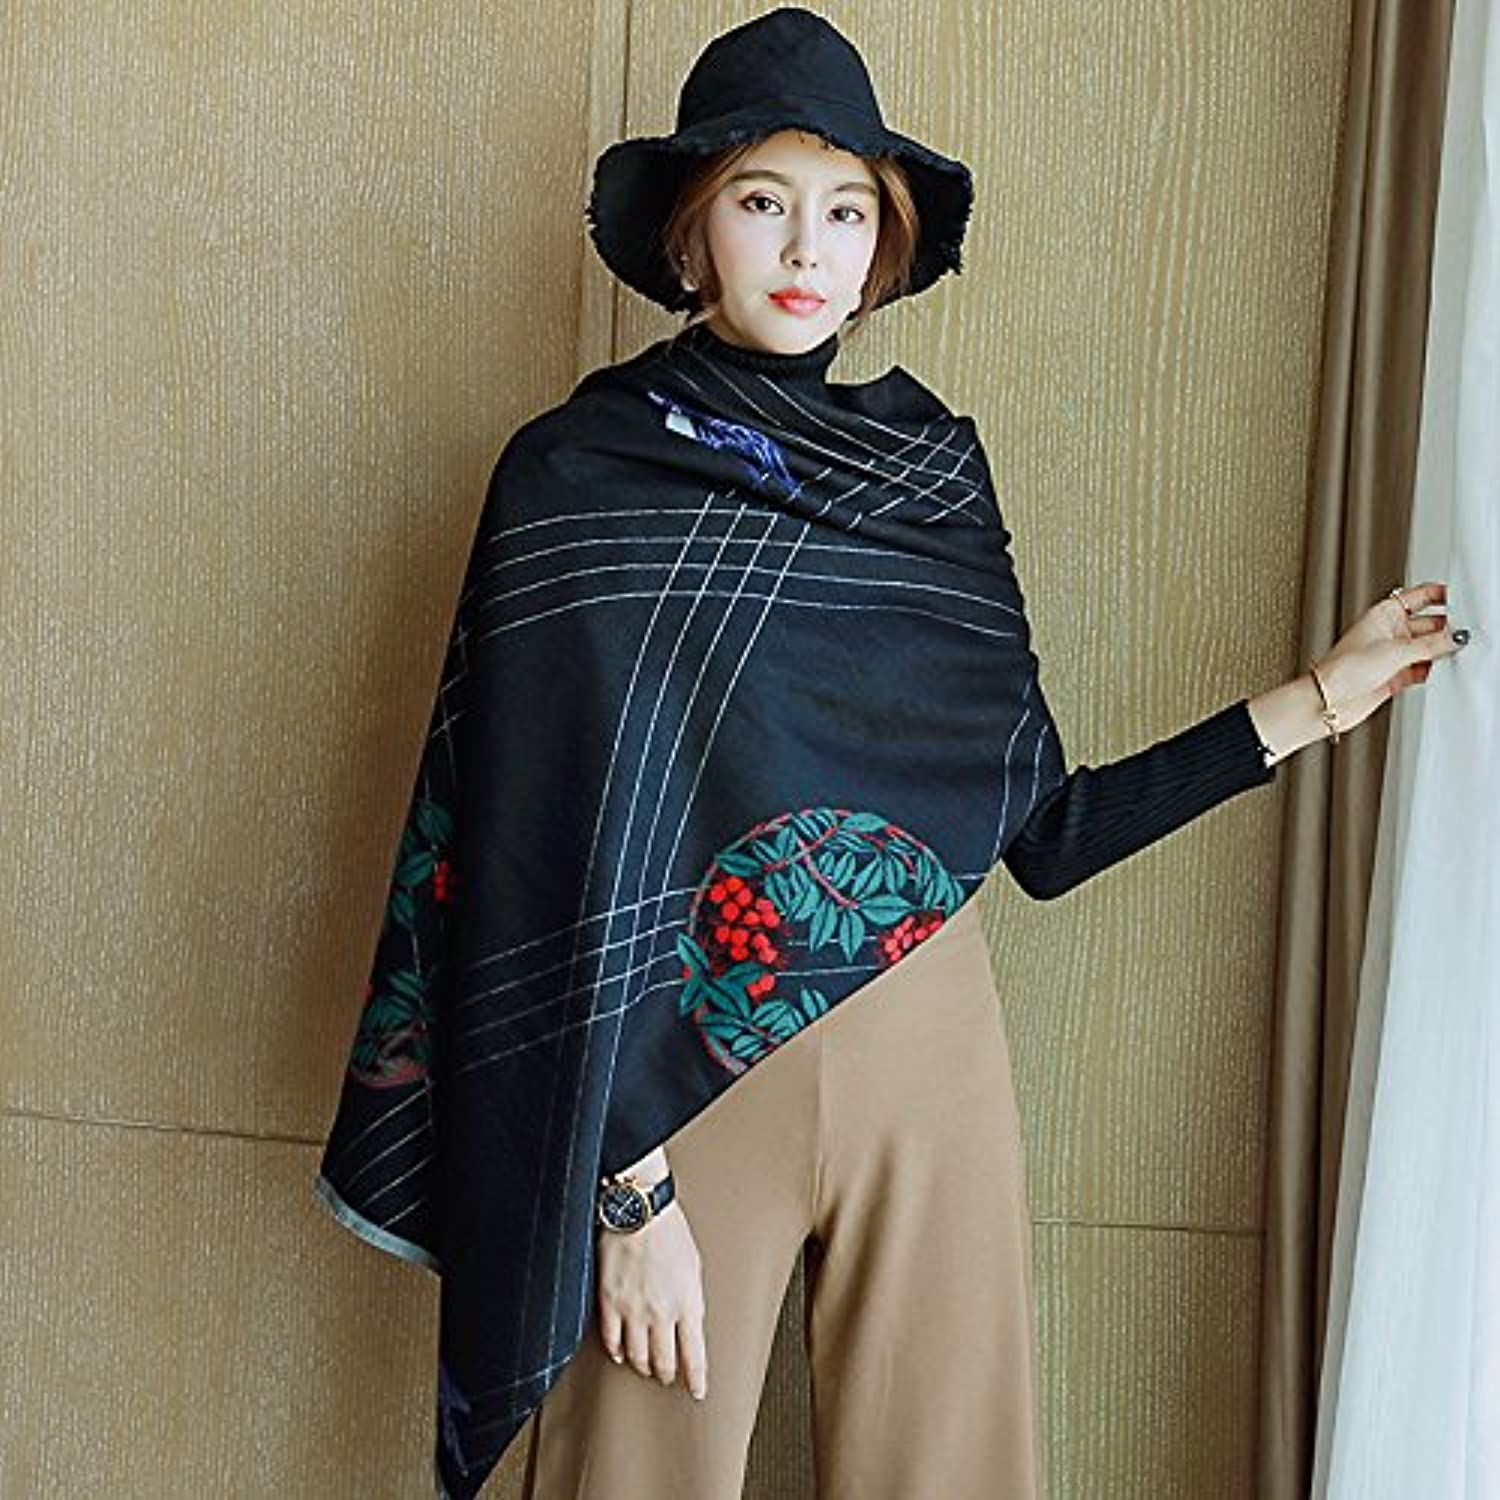 Autumn and Winter DoubleSided Dualuse Cashmere Tassel Shawl Warm Scarf Female Long Paragraph Thick Rectangular 190cm  65cm,Swallow 4 Black Women, Festivals, Birthday Presents